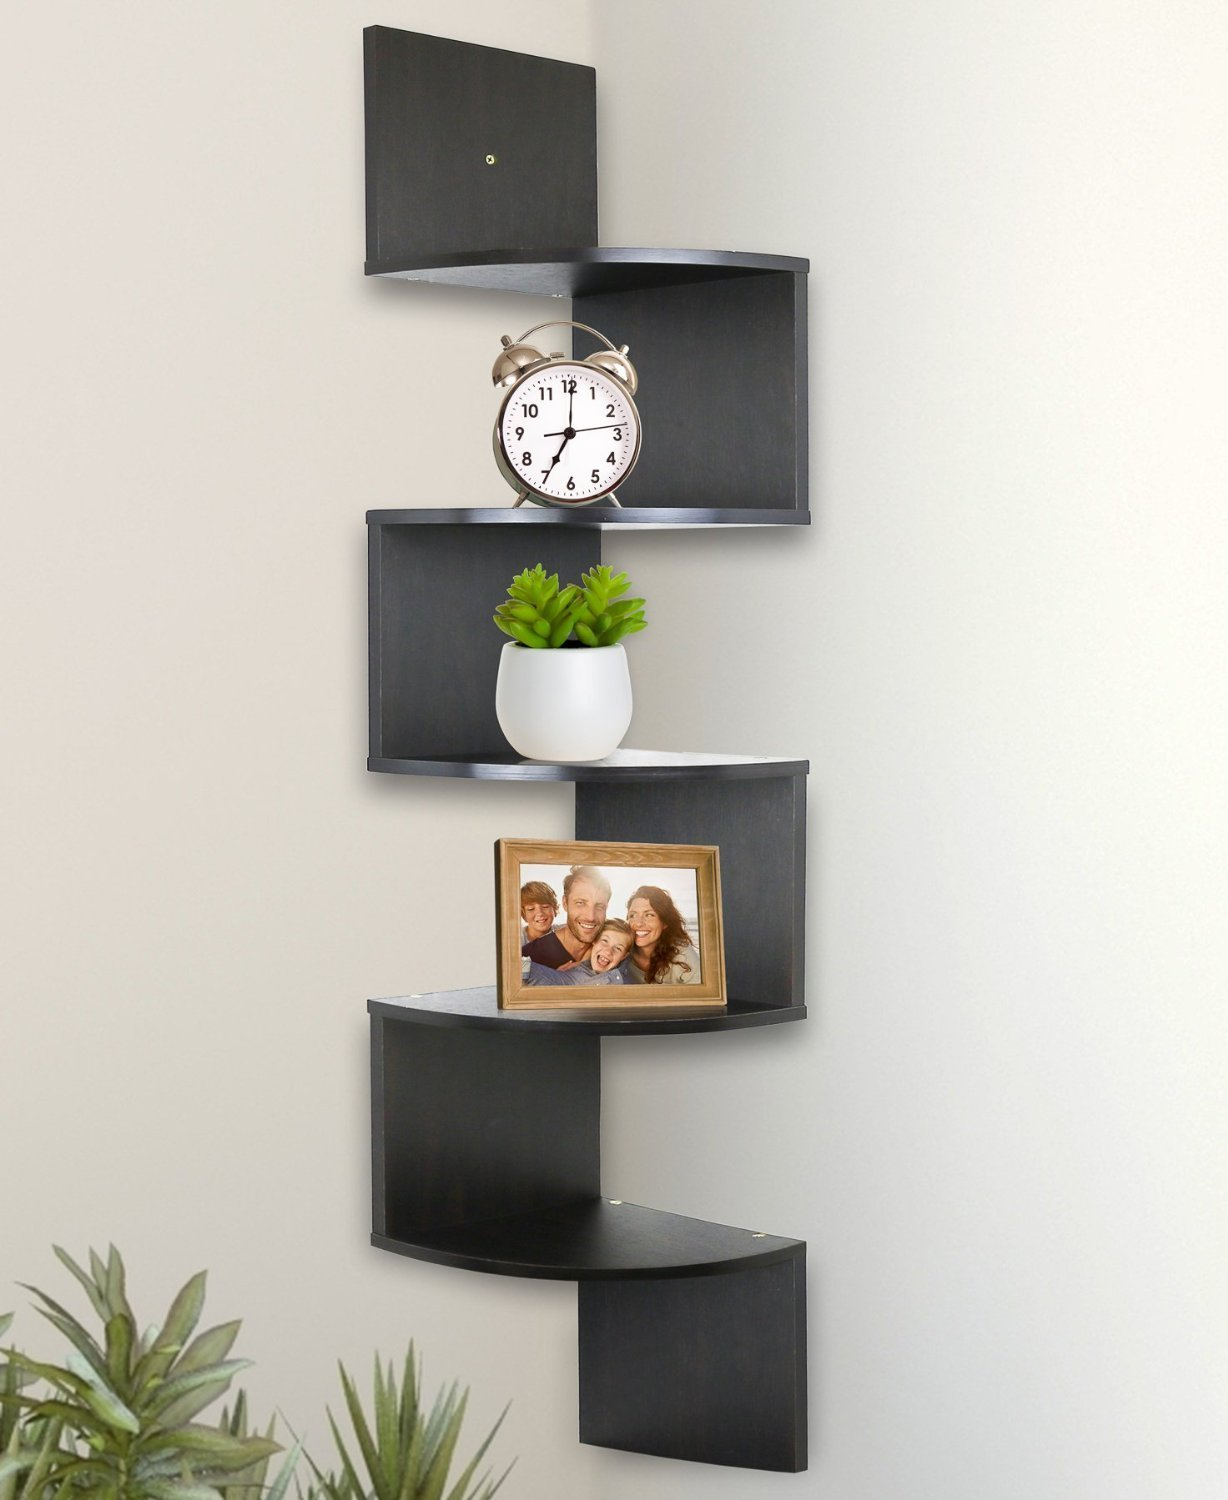 greenco  tier wall mount corner shelves espresso finish  walmartcom -